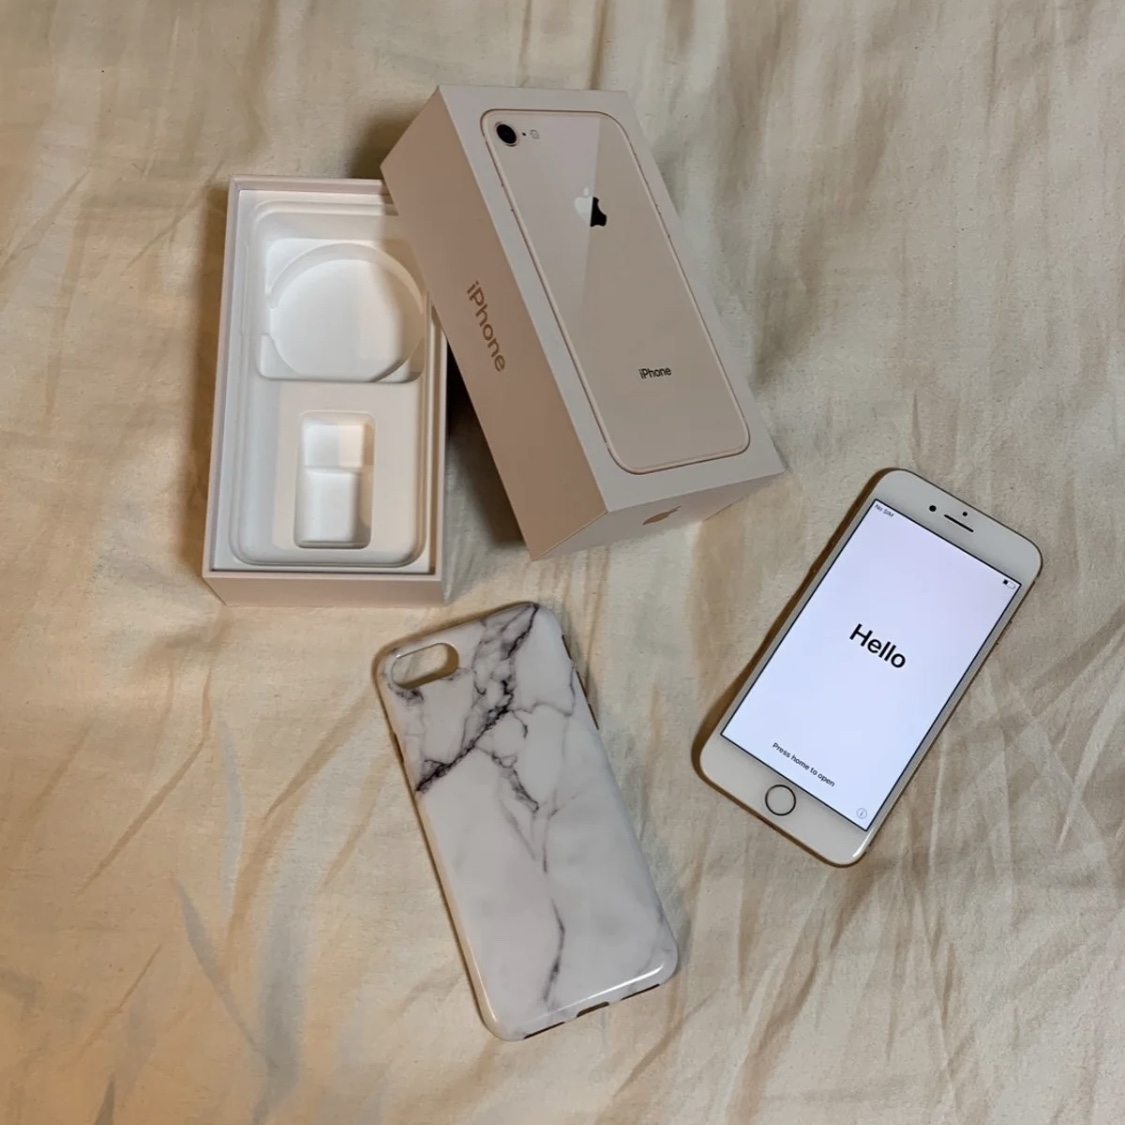 Gold iPhone 8 256GB unlocked, factory reset, and SIM